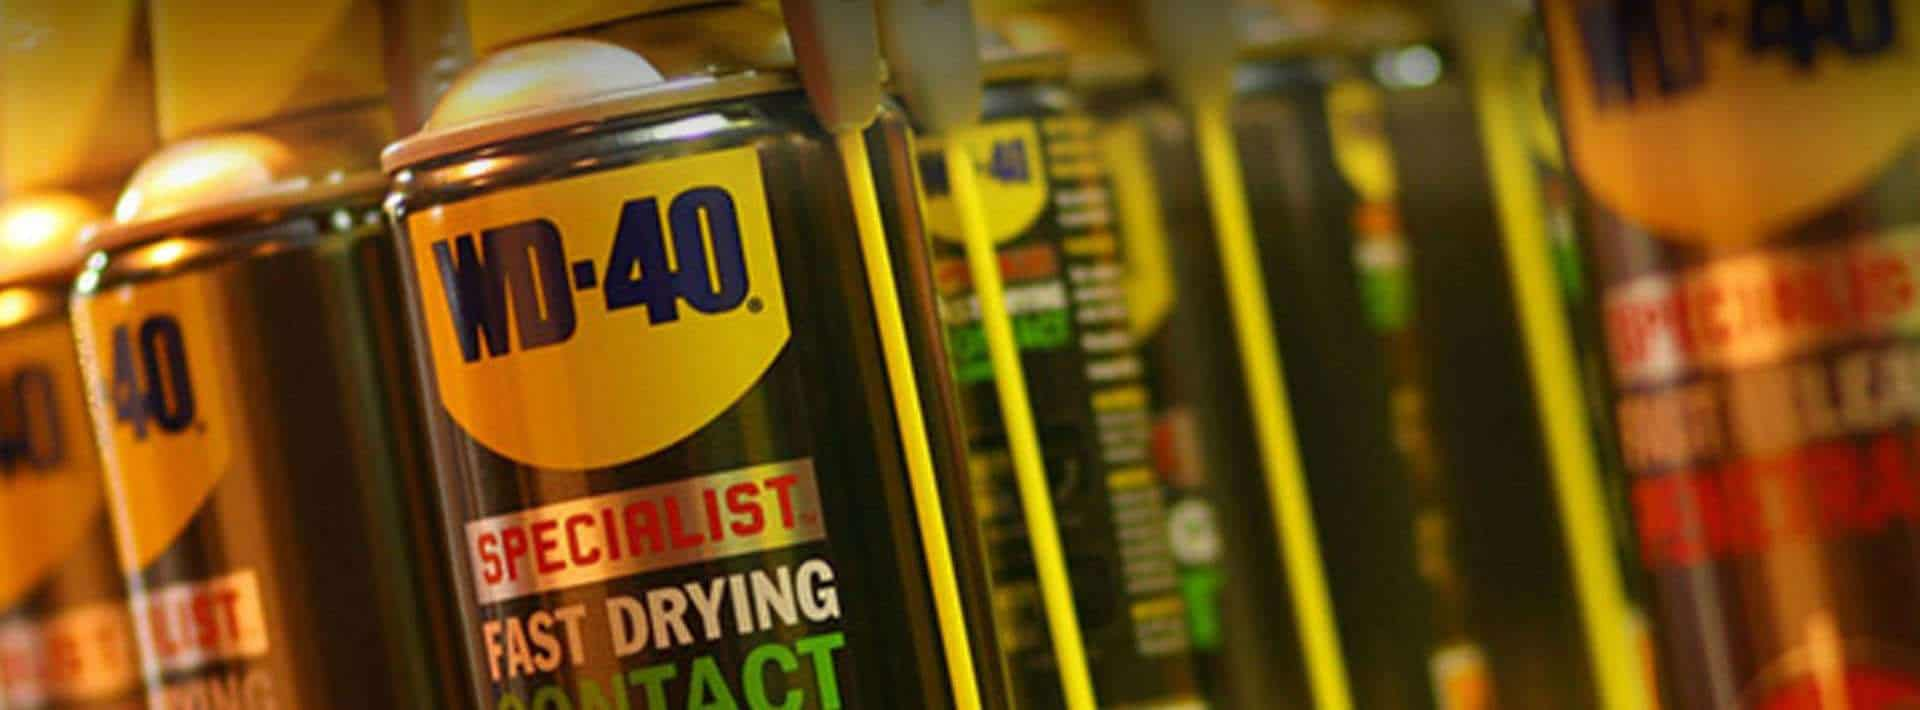 WD-40 Specialist gamme